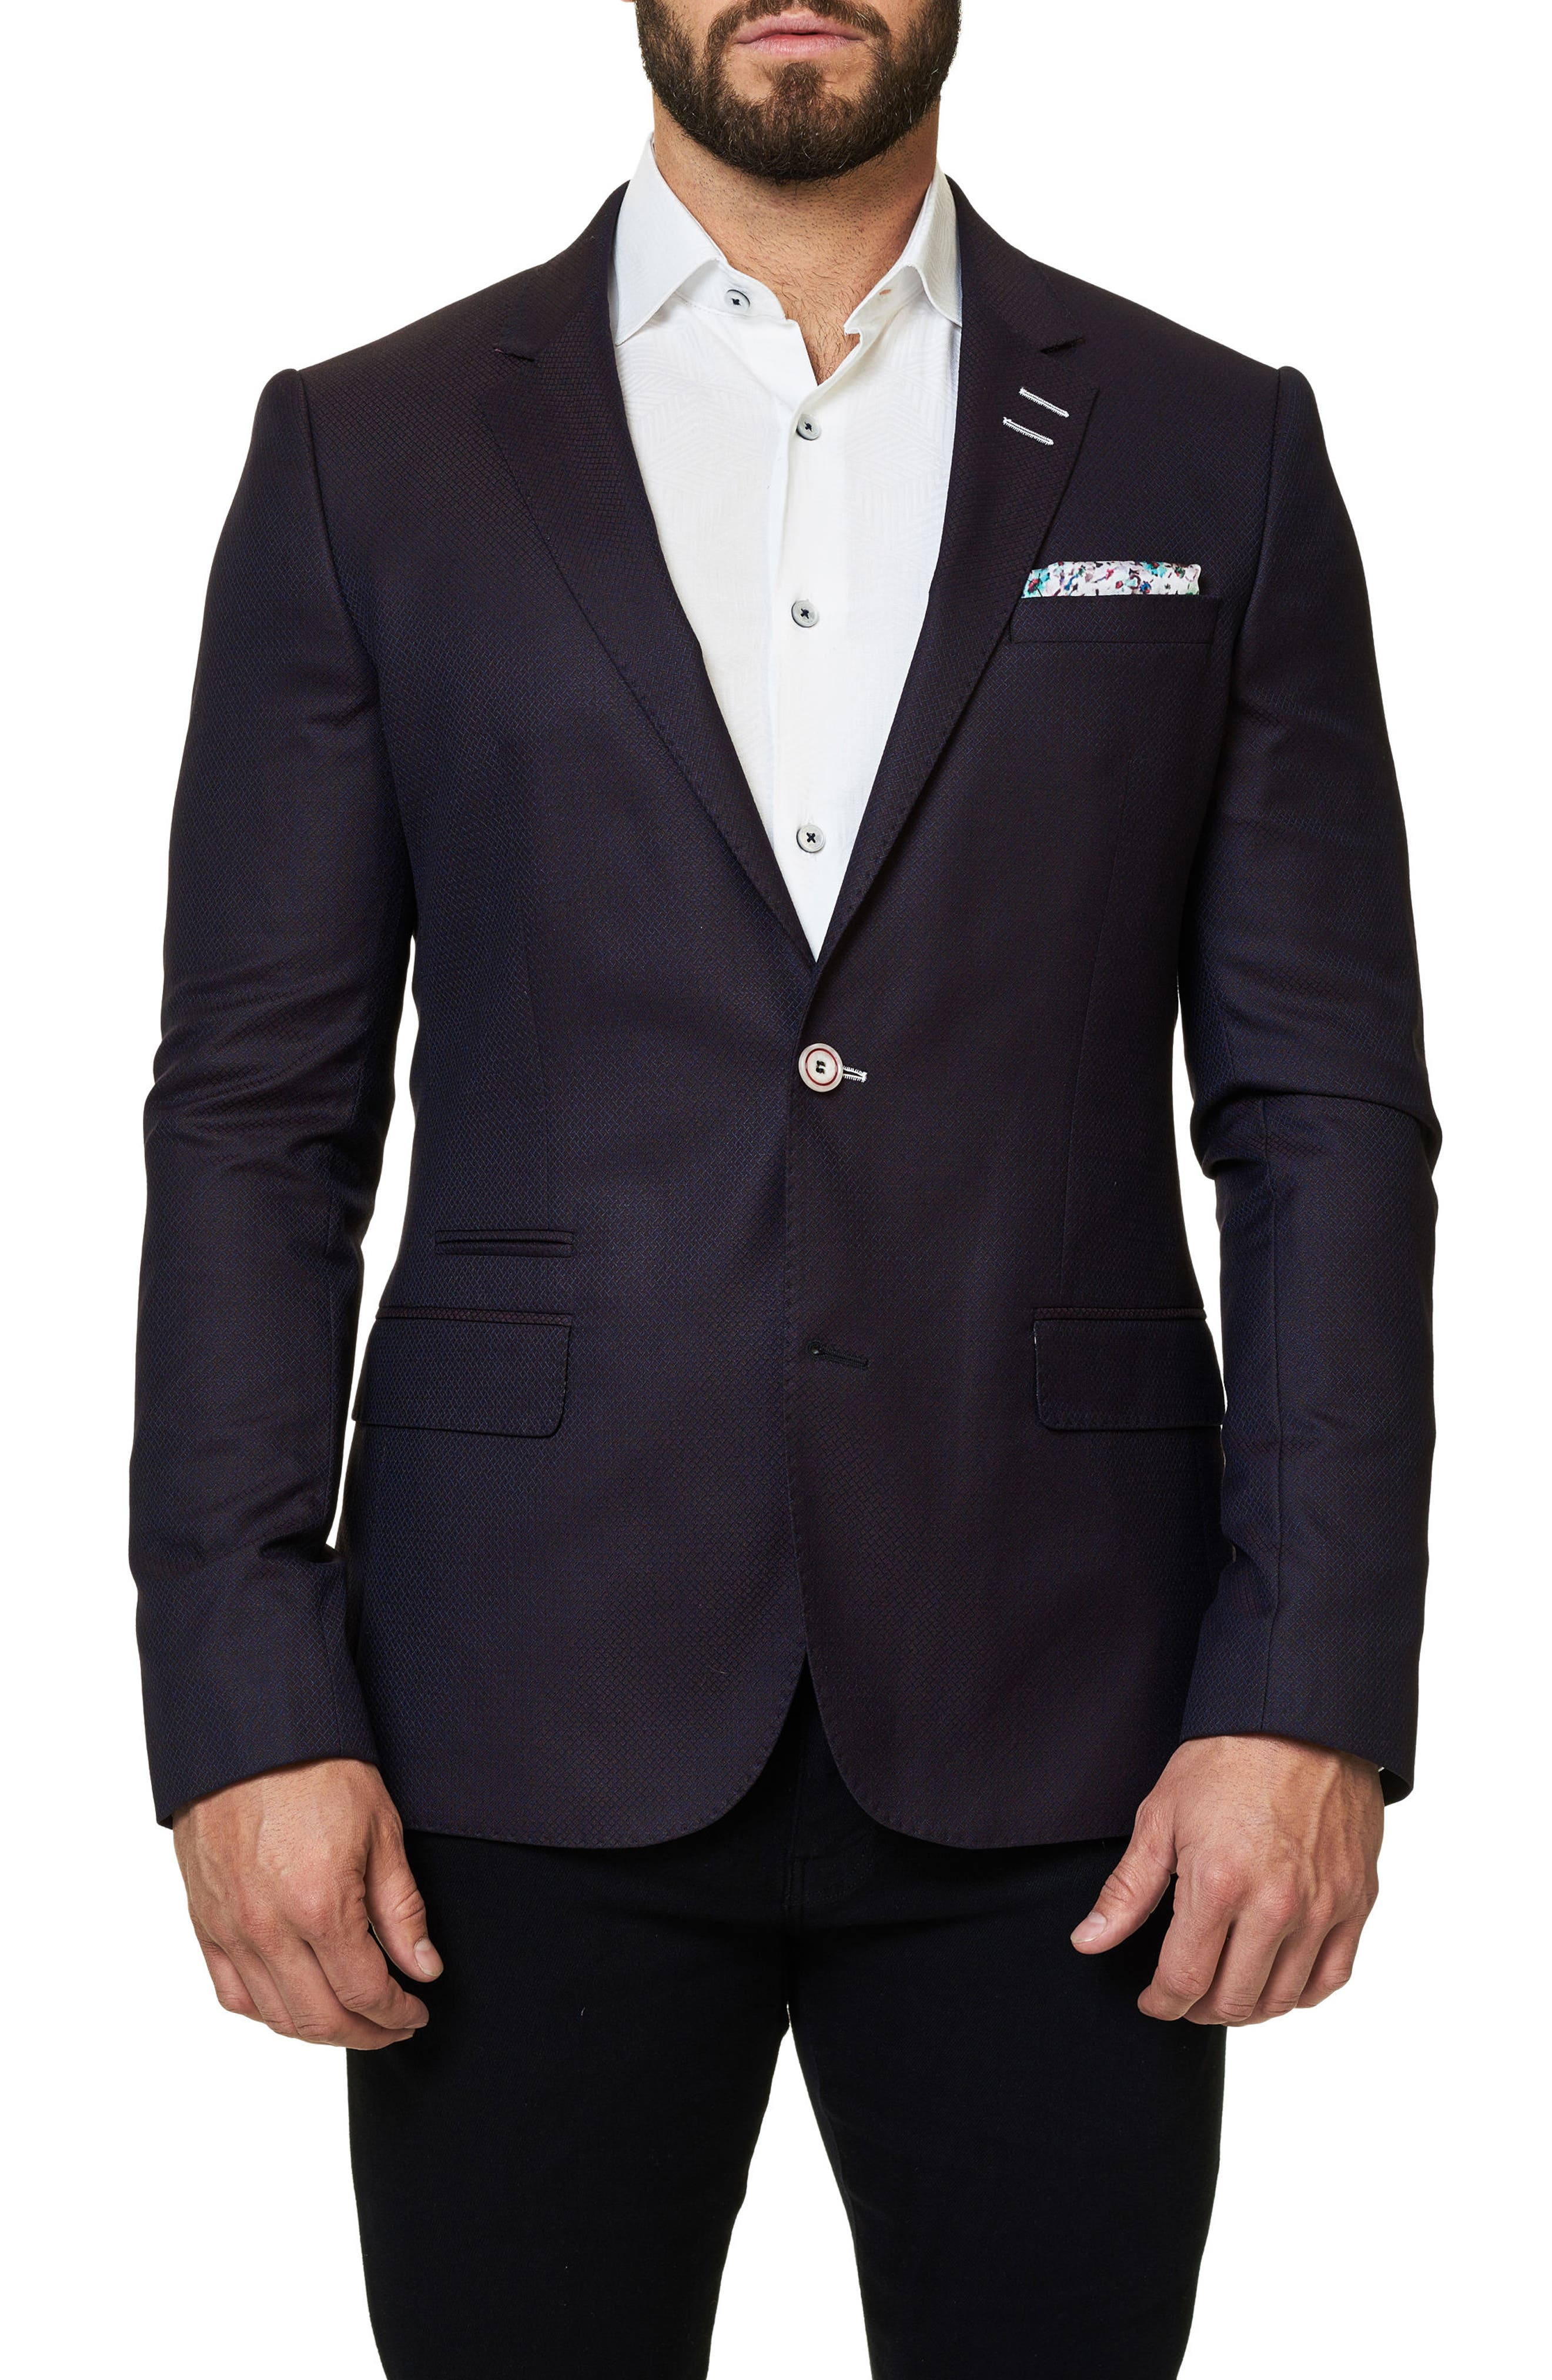 Socrate Textured Sport Coat,                         Main,                         color, 610